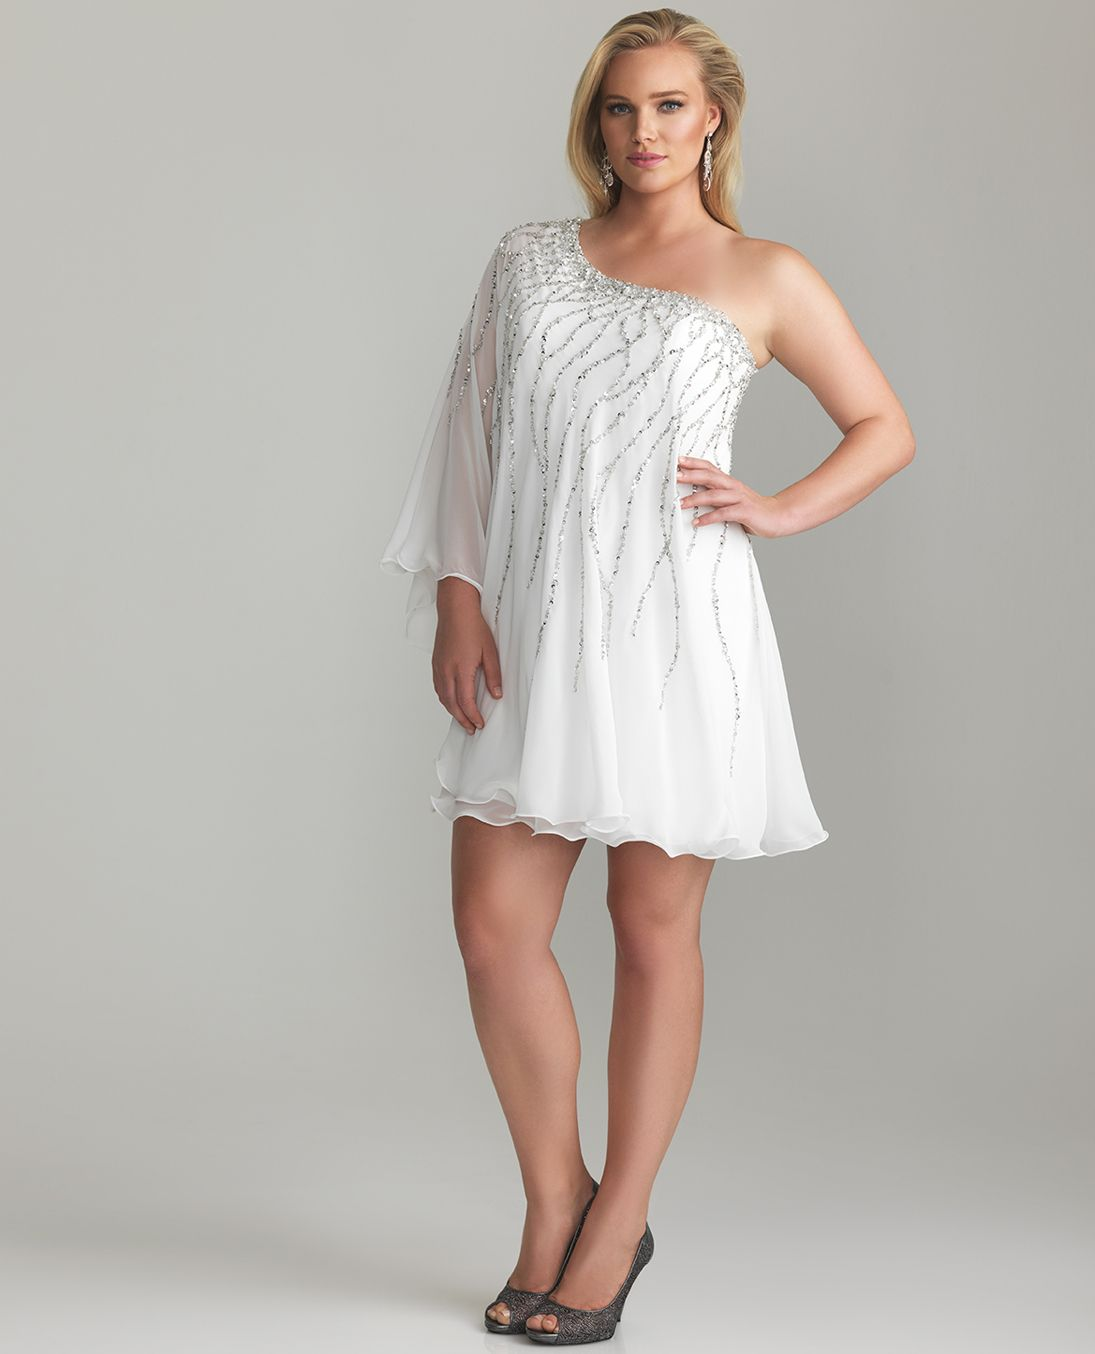 Short Formal Glamour Dresses for Your Best Moment : Plus Size ...